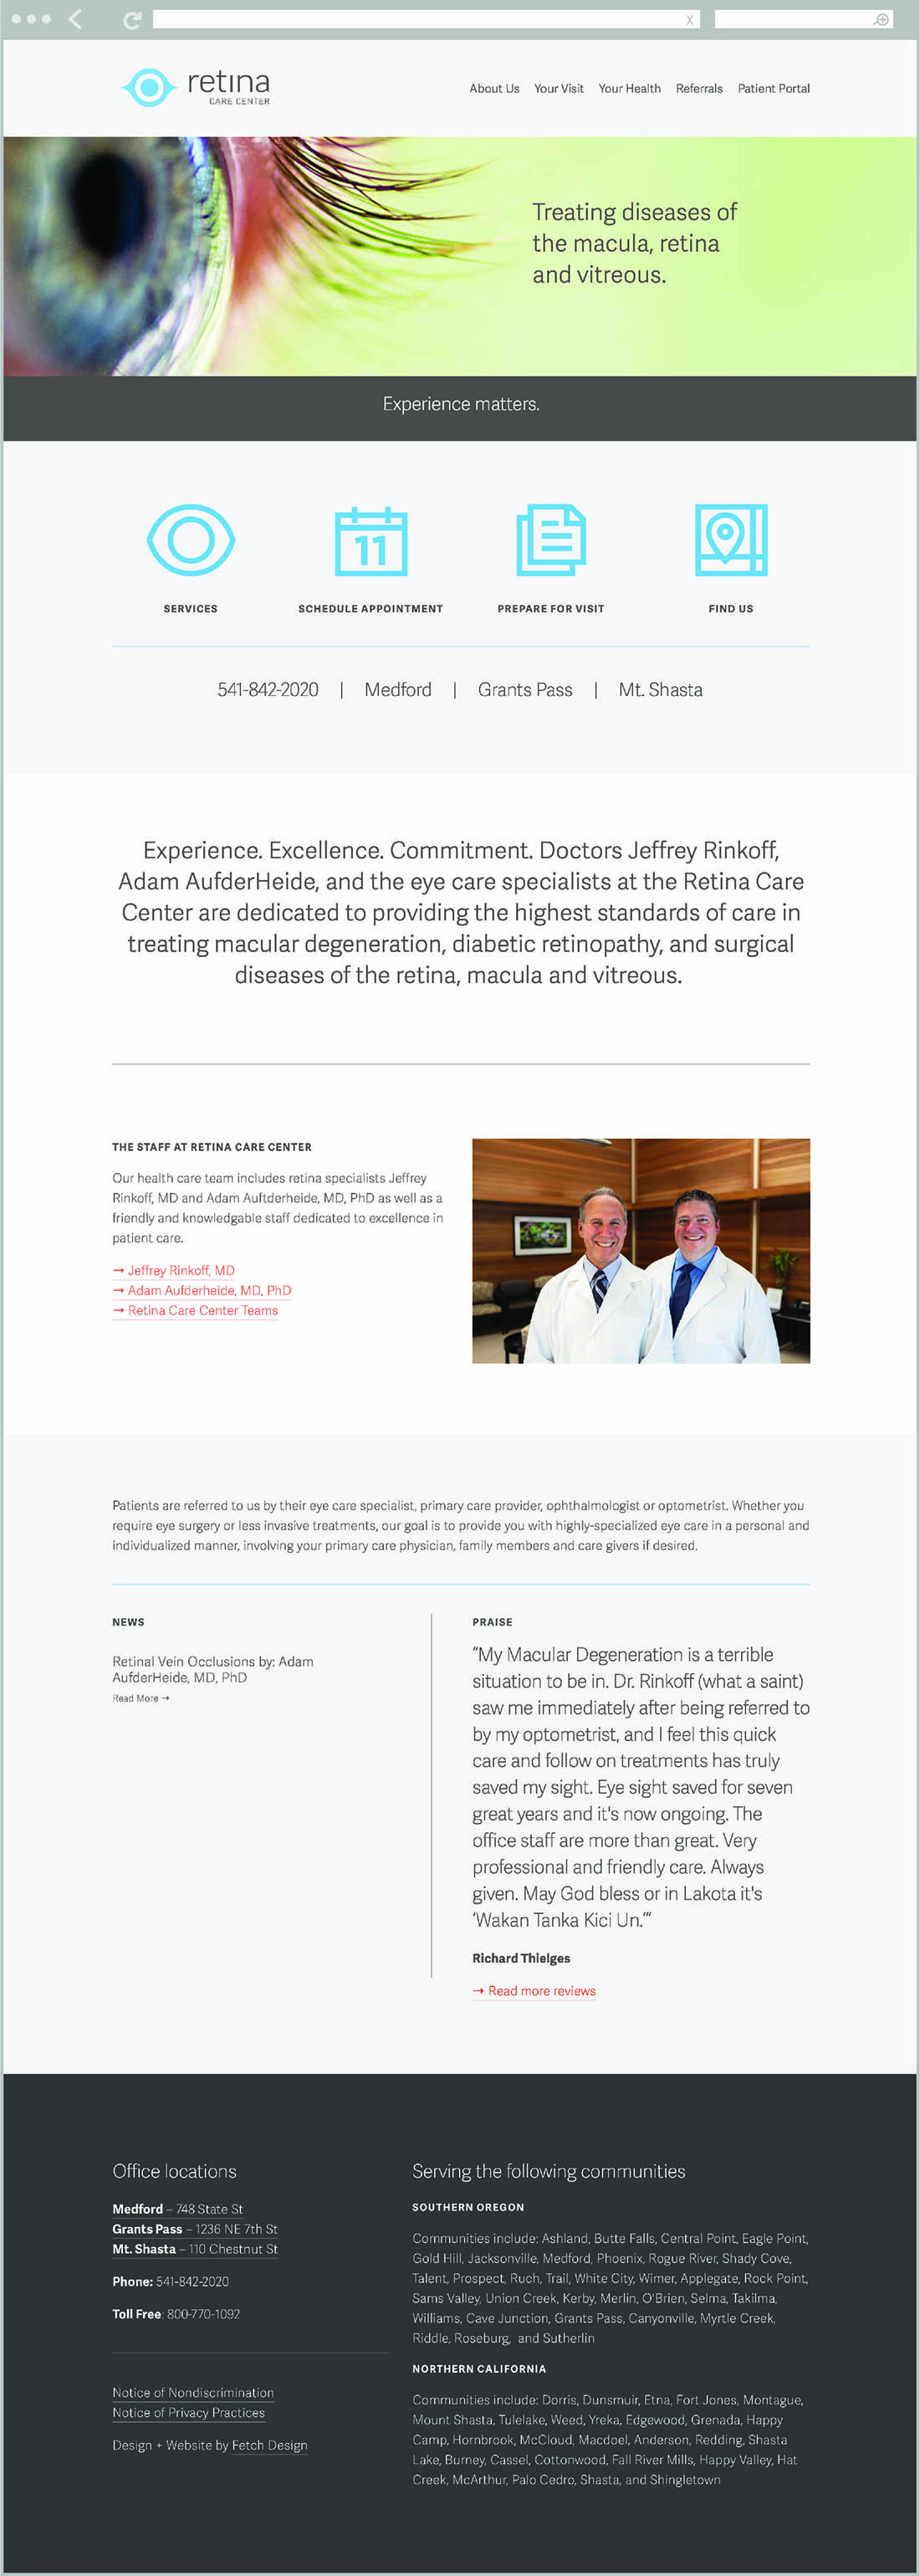 Retina Care Center website. The center has Southern Oregon offices in Medford and Grants Pass, as well as a location in Mt. Shasta California.